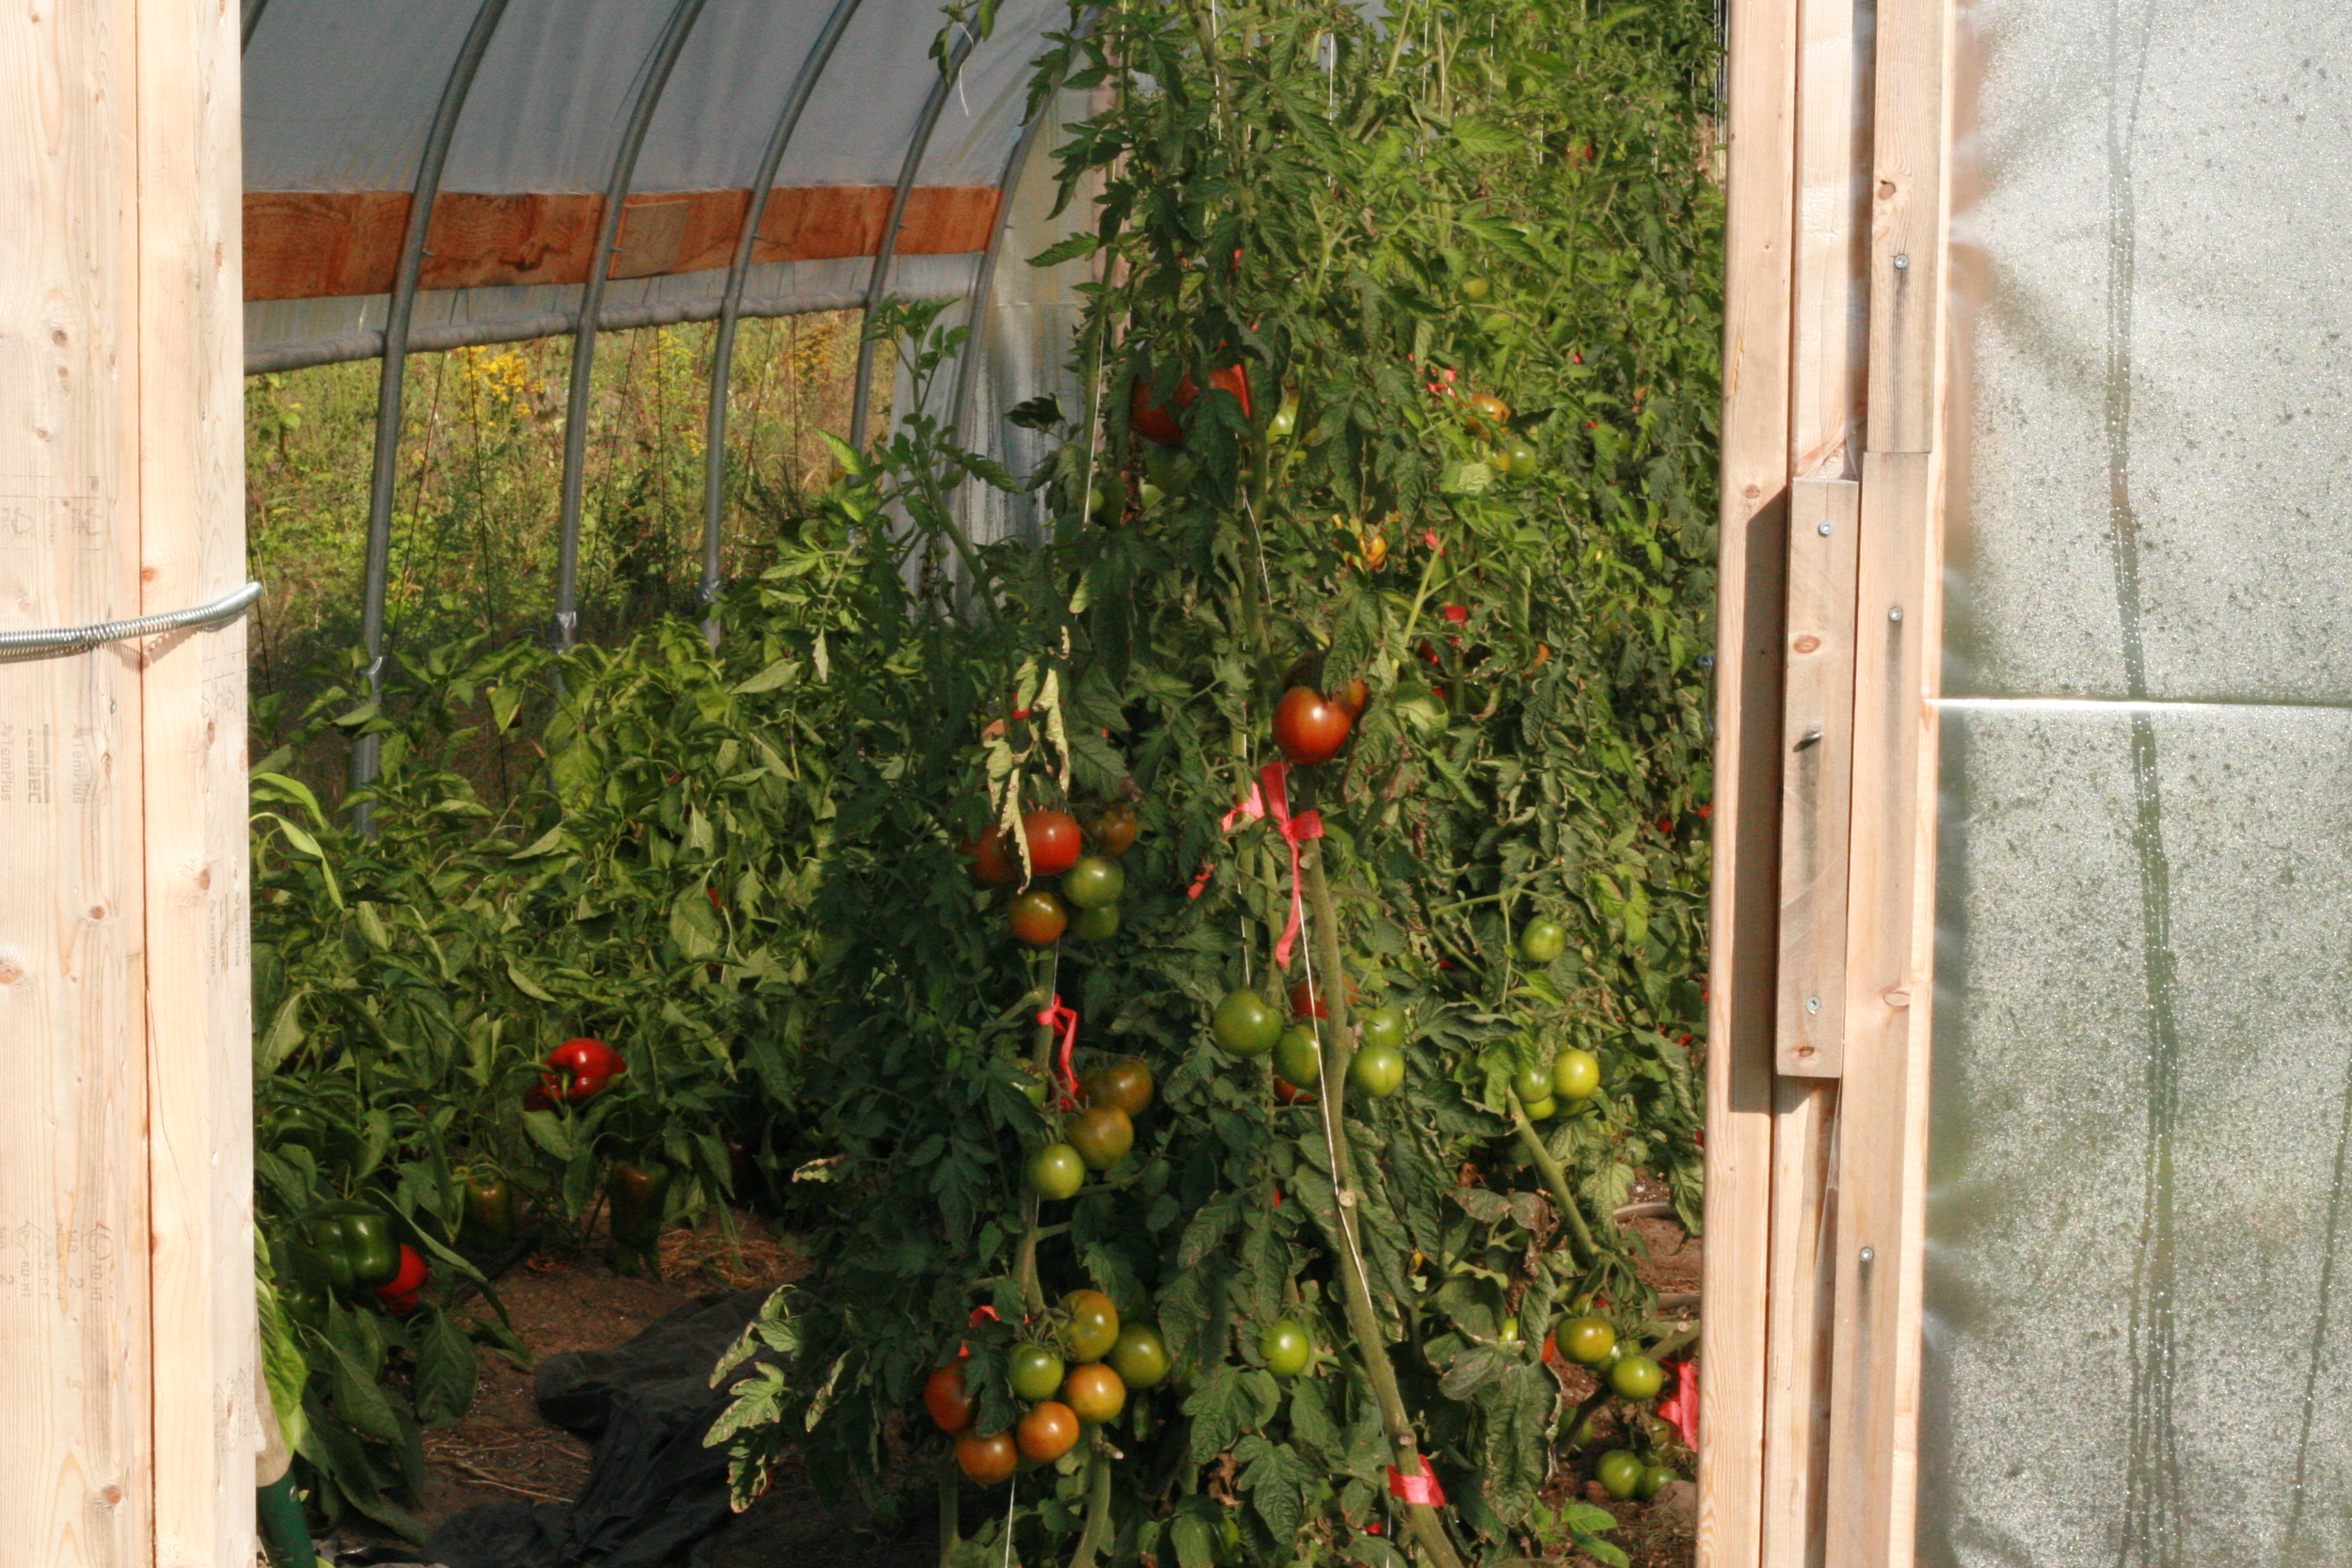 Tomatoes and sweet peppers